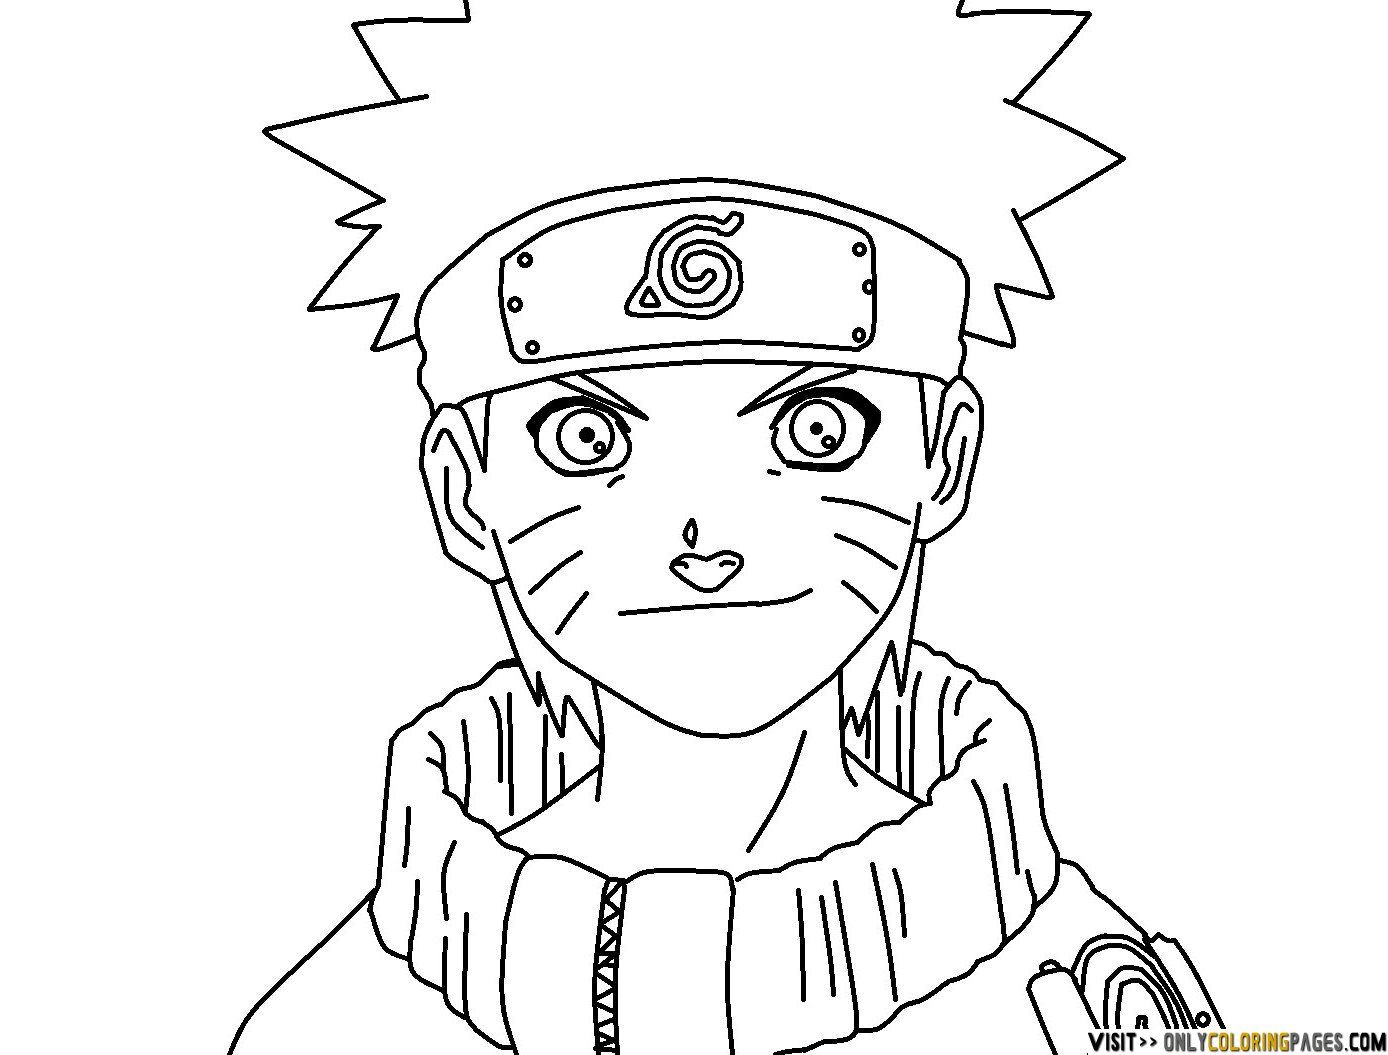 Naruto Coloring Pages, Printable Naruto Coloring Pages intérieur Naruto Shippuden Coloring Pages